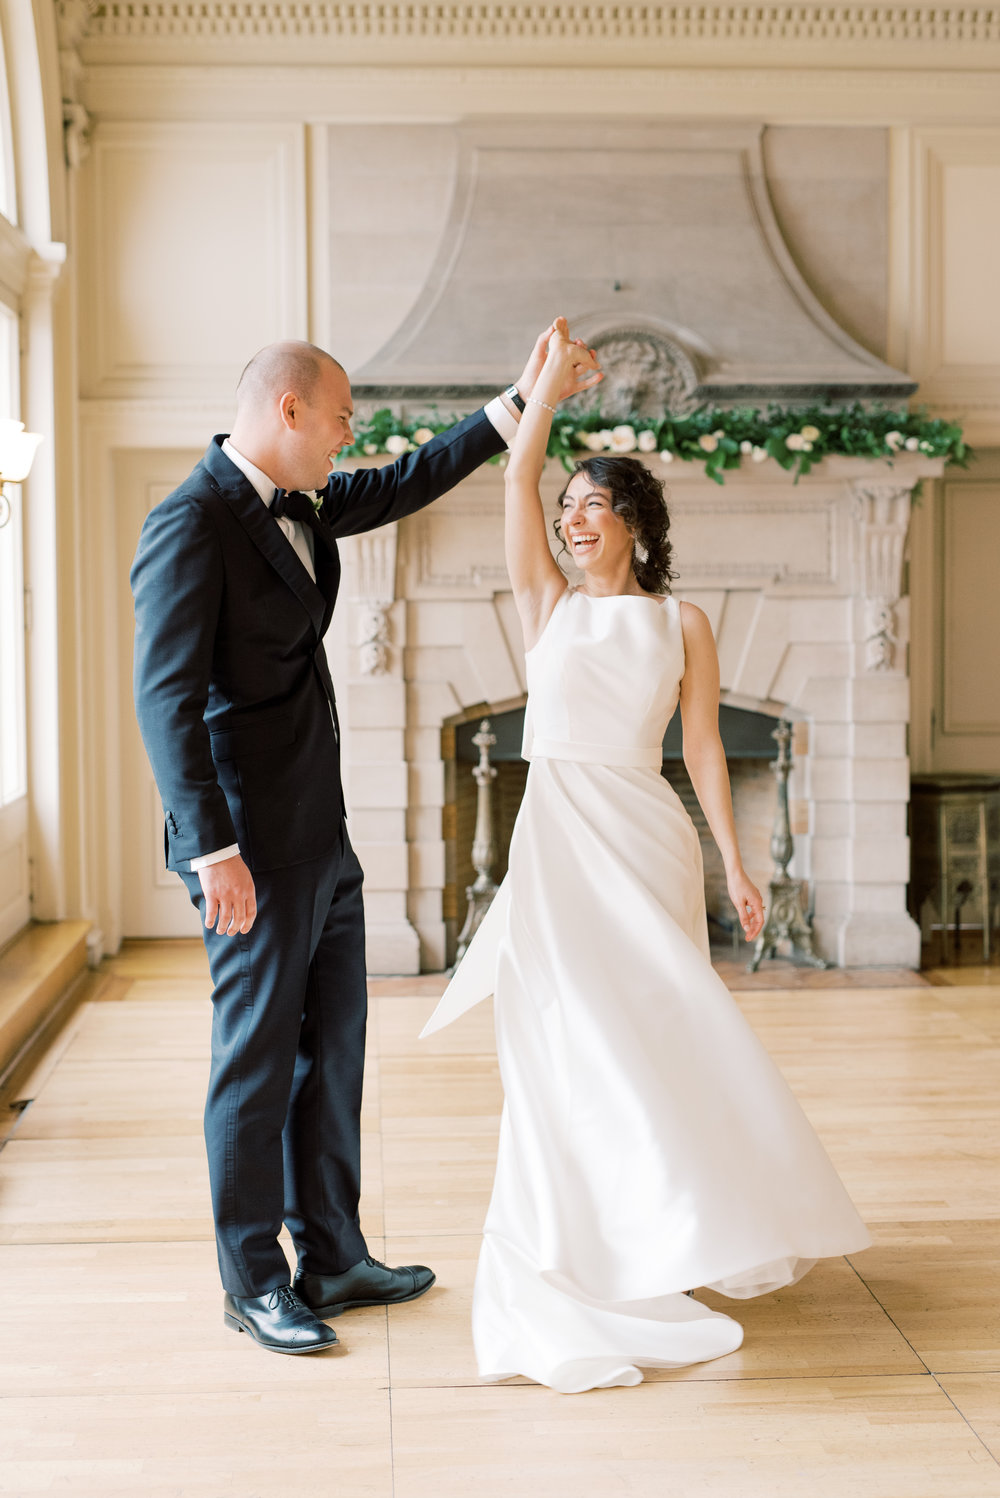 The big smile on our bride as her groom gives her a twirl says it all at this romantic and classic wedding day for their french inspired green and white Cairnwood Estate wedding